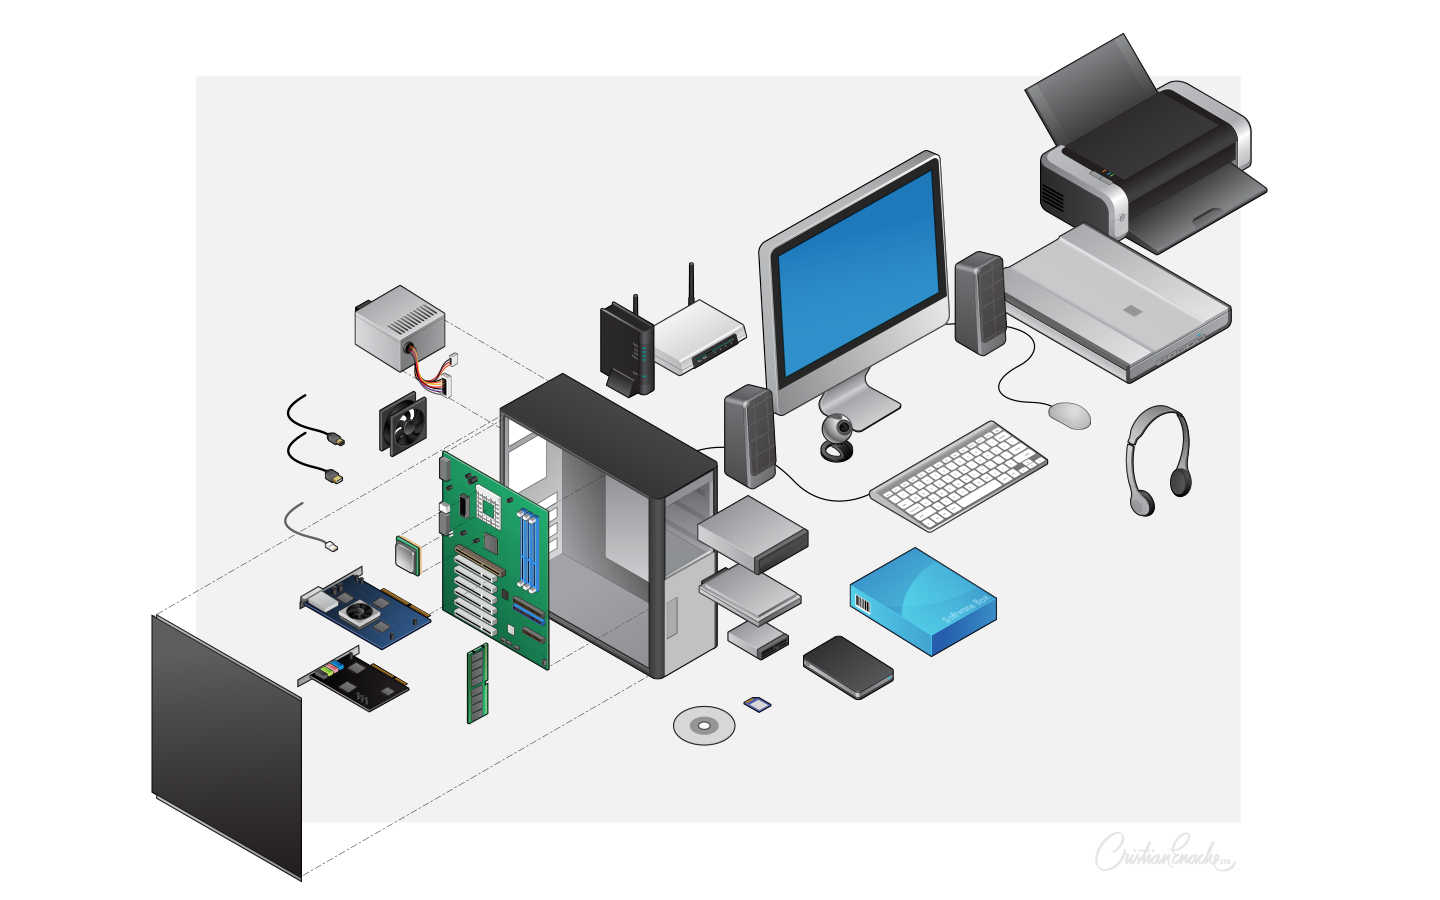 What are the parts of a computer